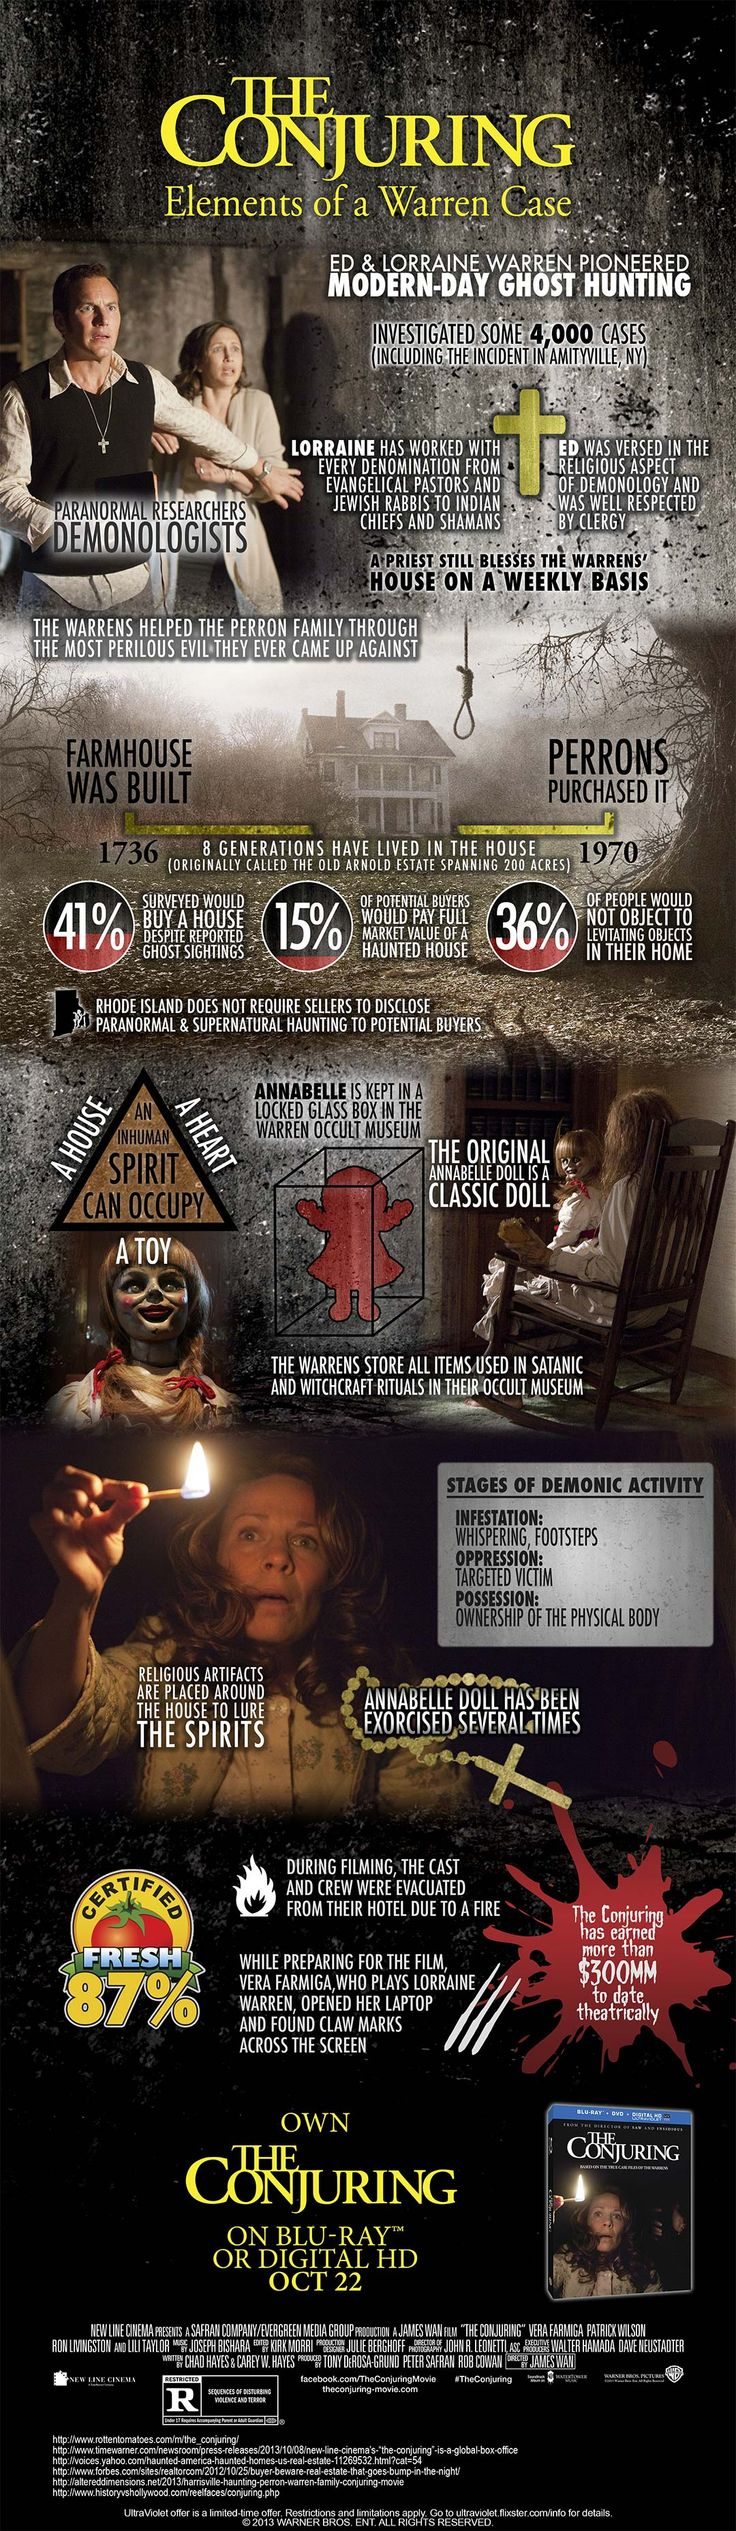 #TheConjuring #Awesome #Psychological #Horror #Thriller now on Blu-Ray #psychothriller #movies #taglines